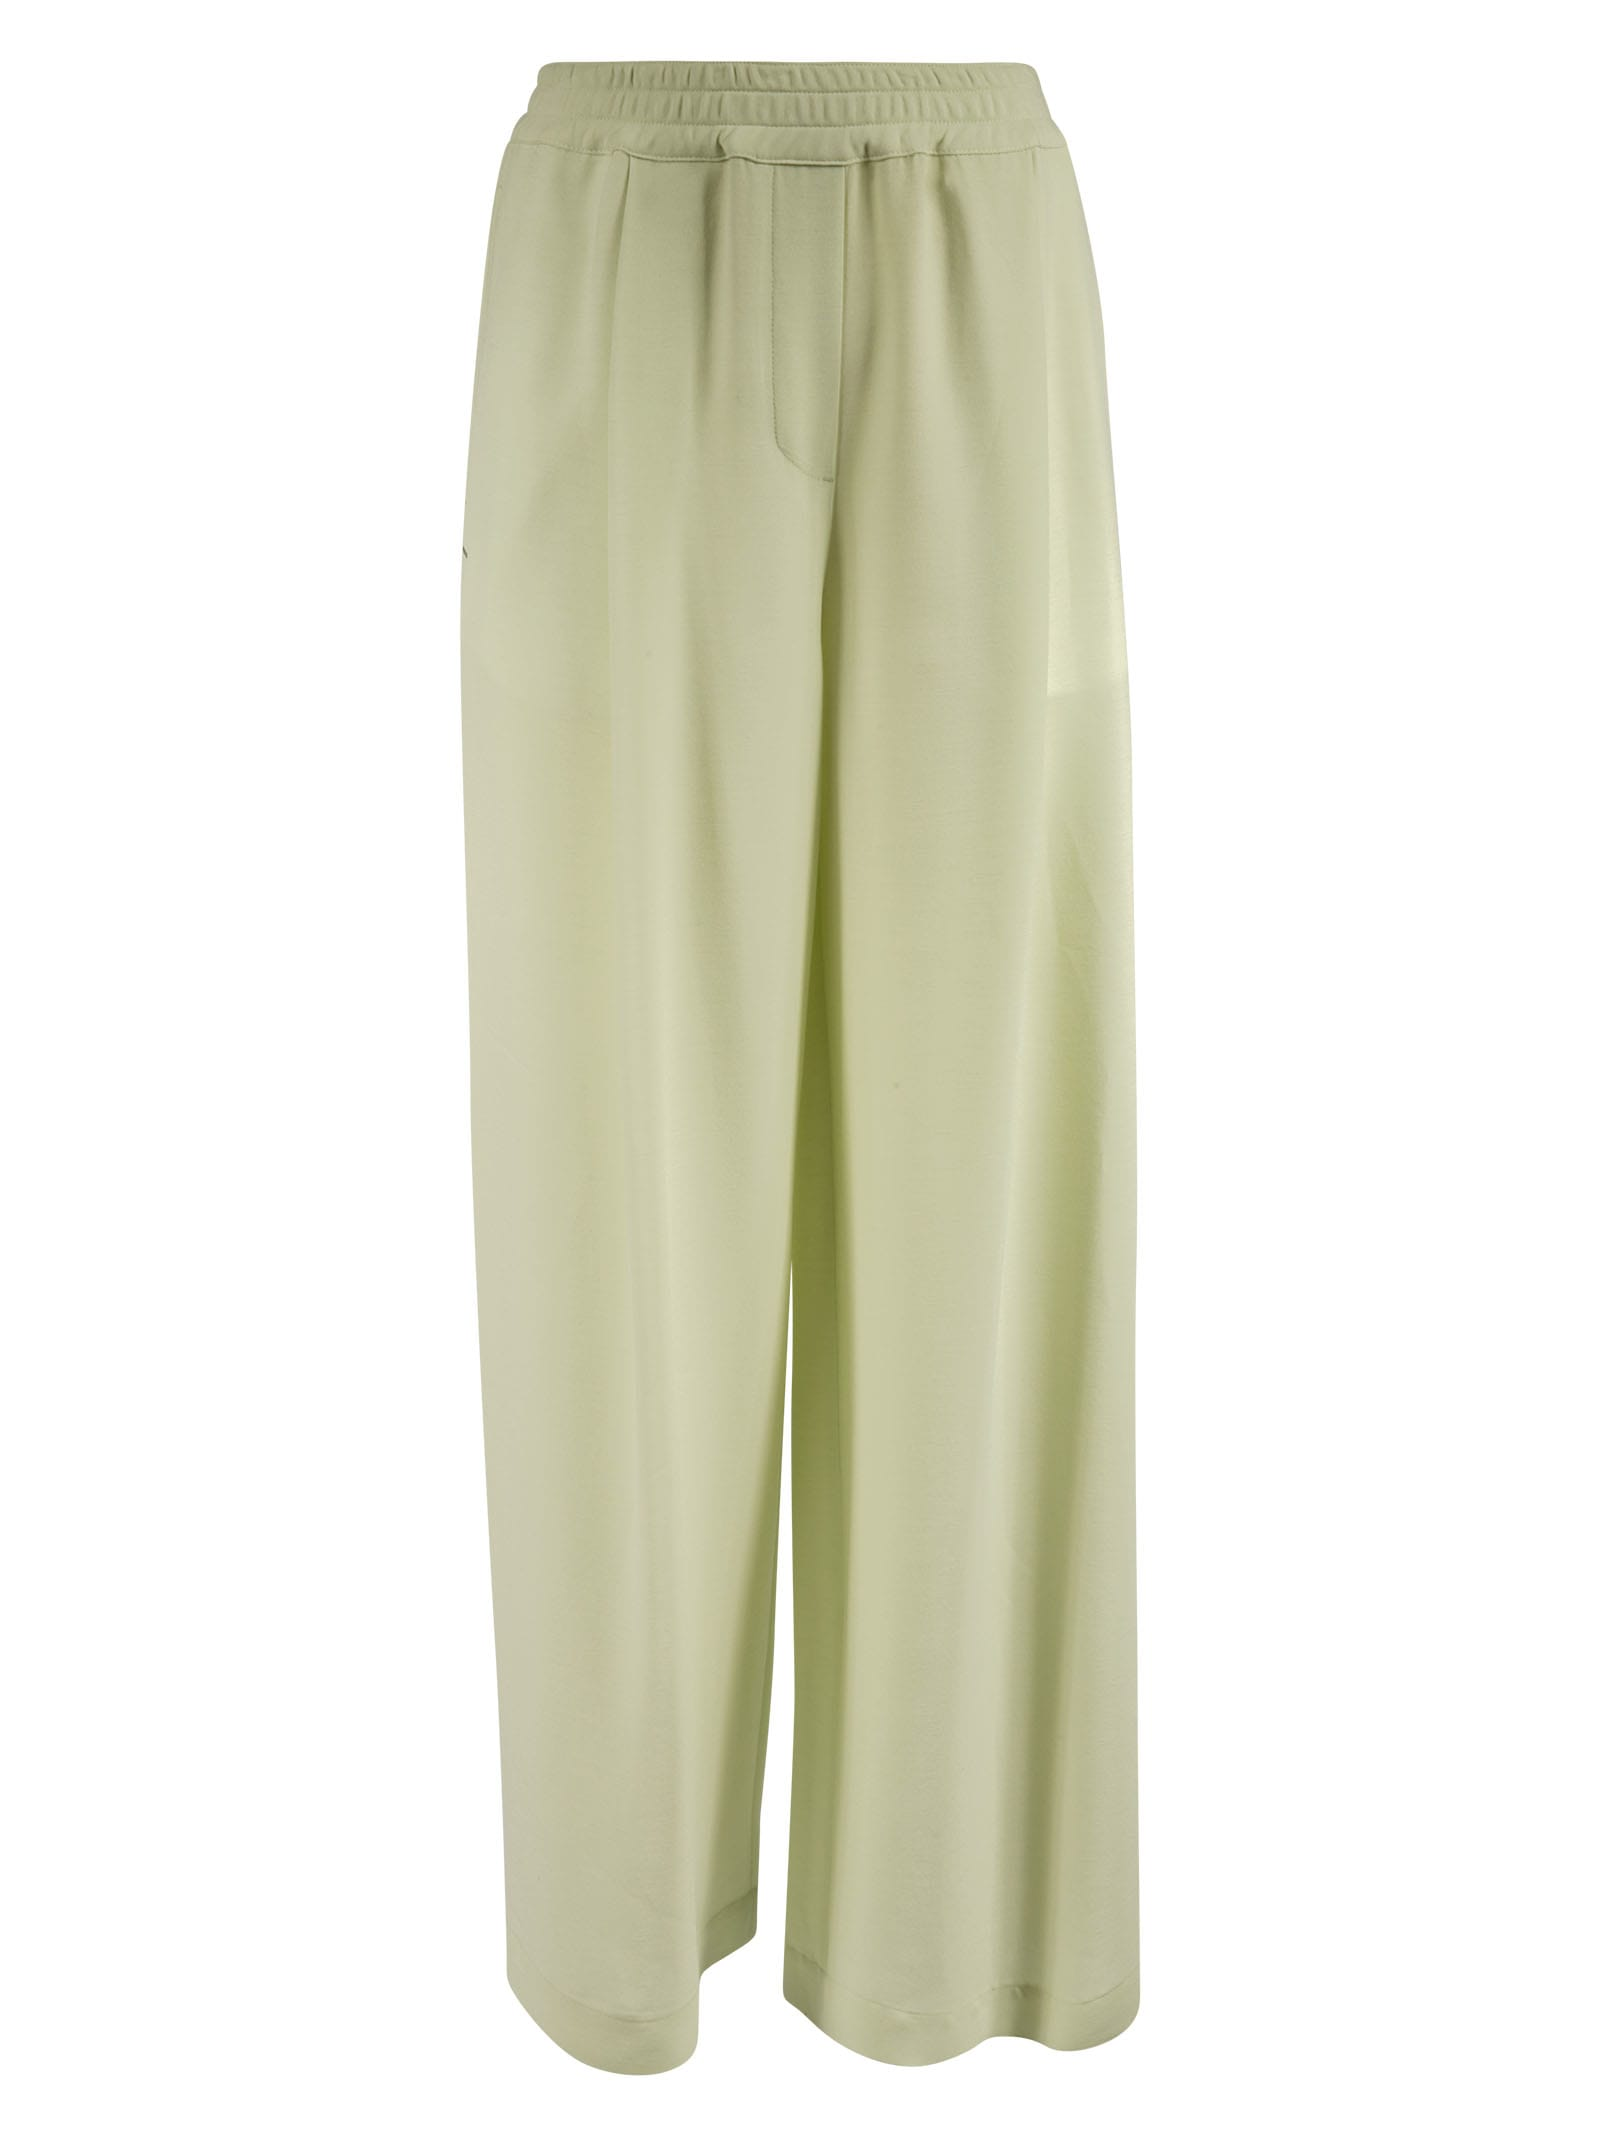 Off-White Pants CADY COULISSE FORLAM TROUSERS